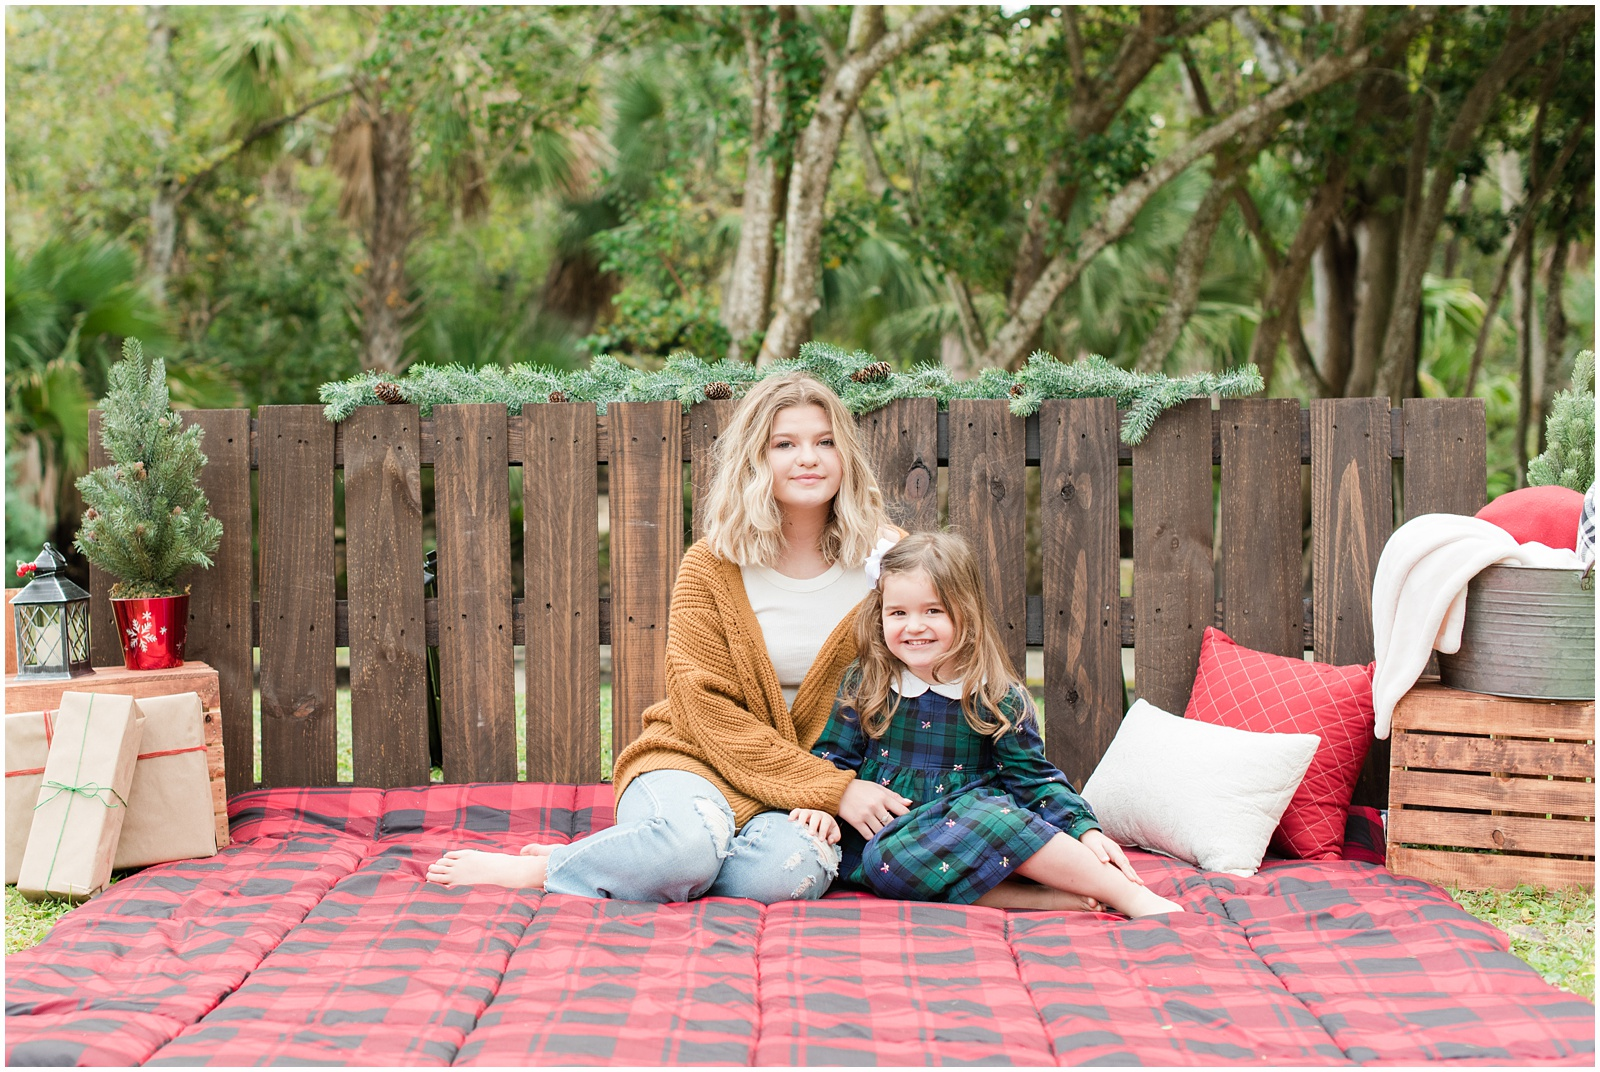 Christmas_Mini Sessions_Holidays_Howell Park_Jacksonville_Florida_27.jpg